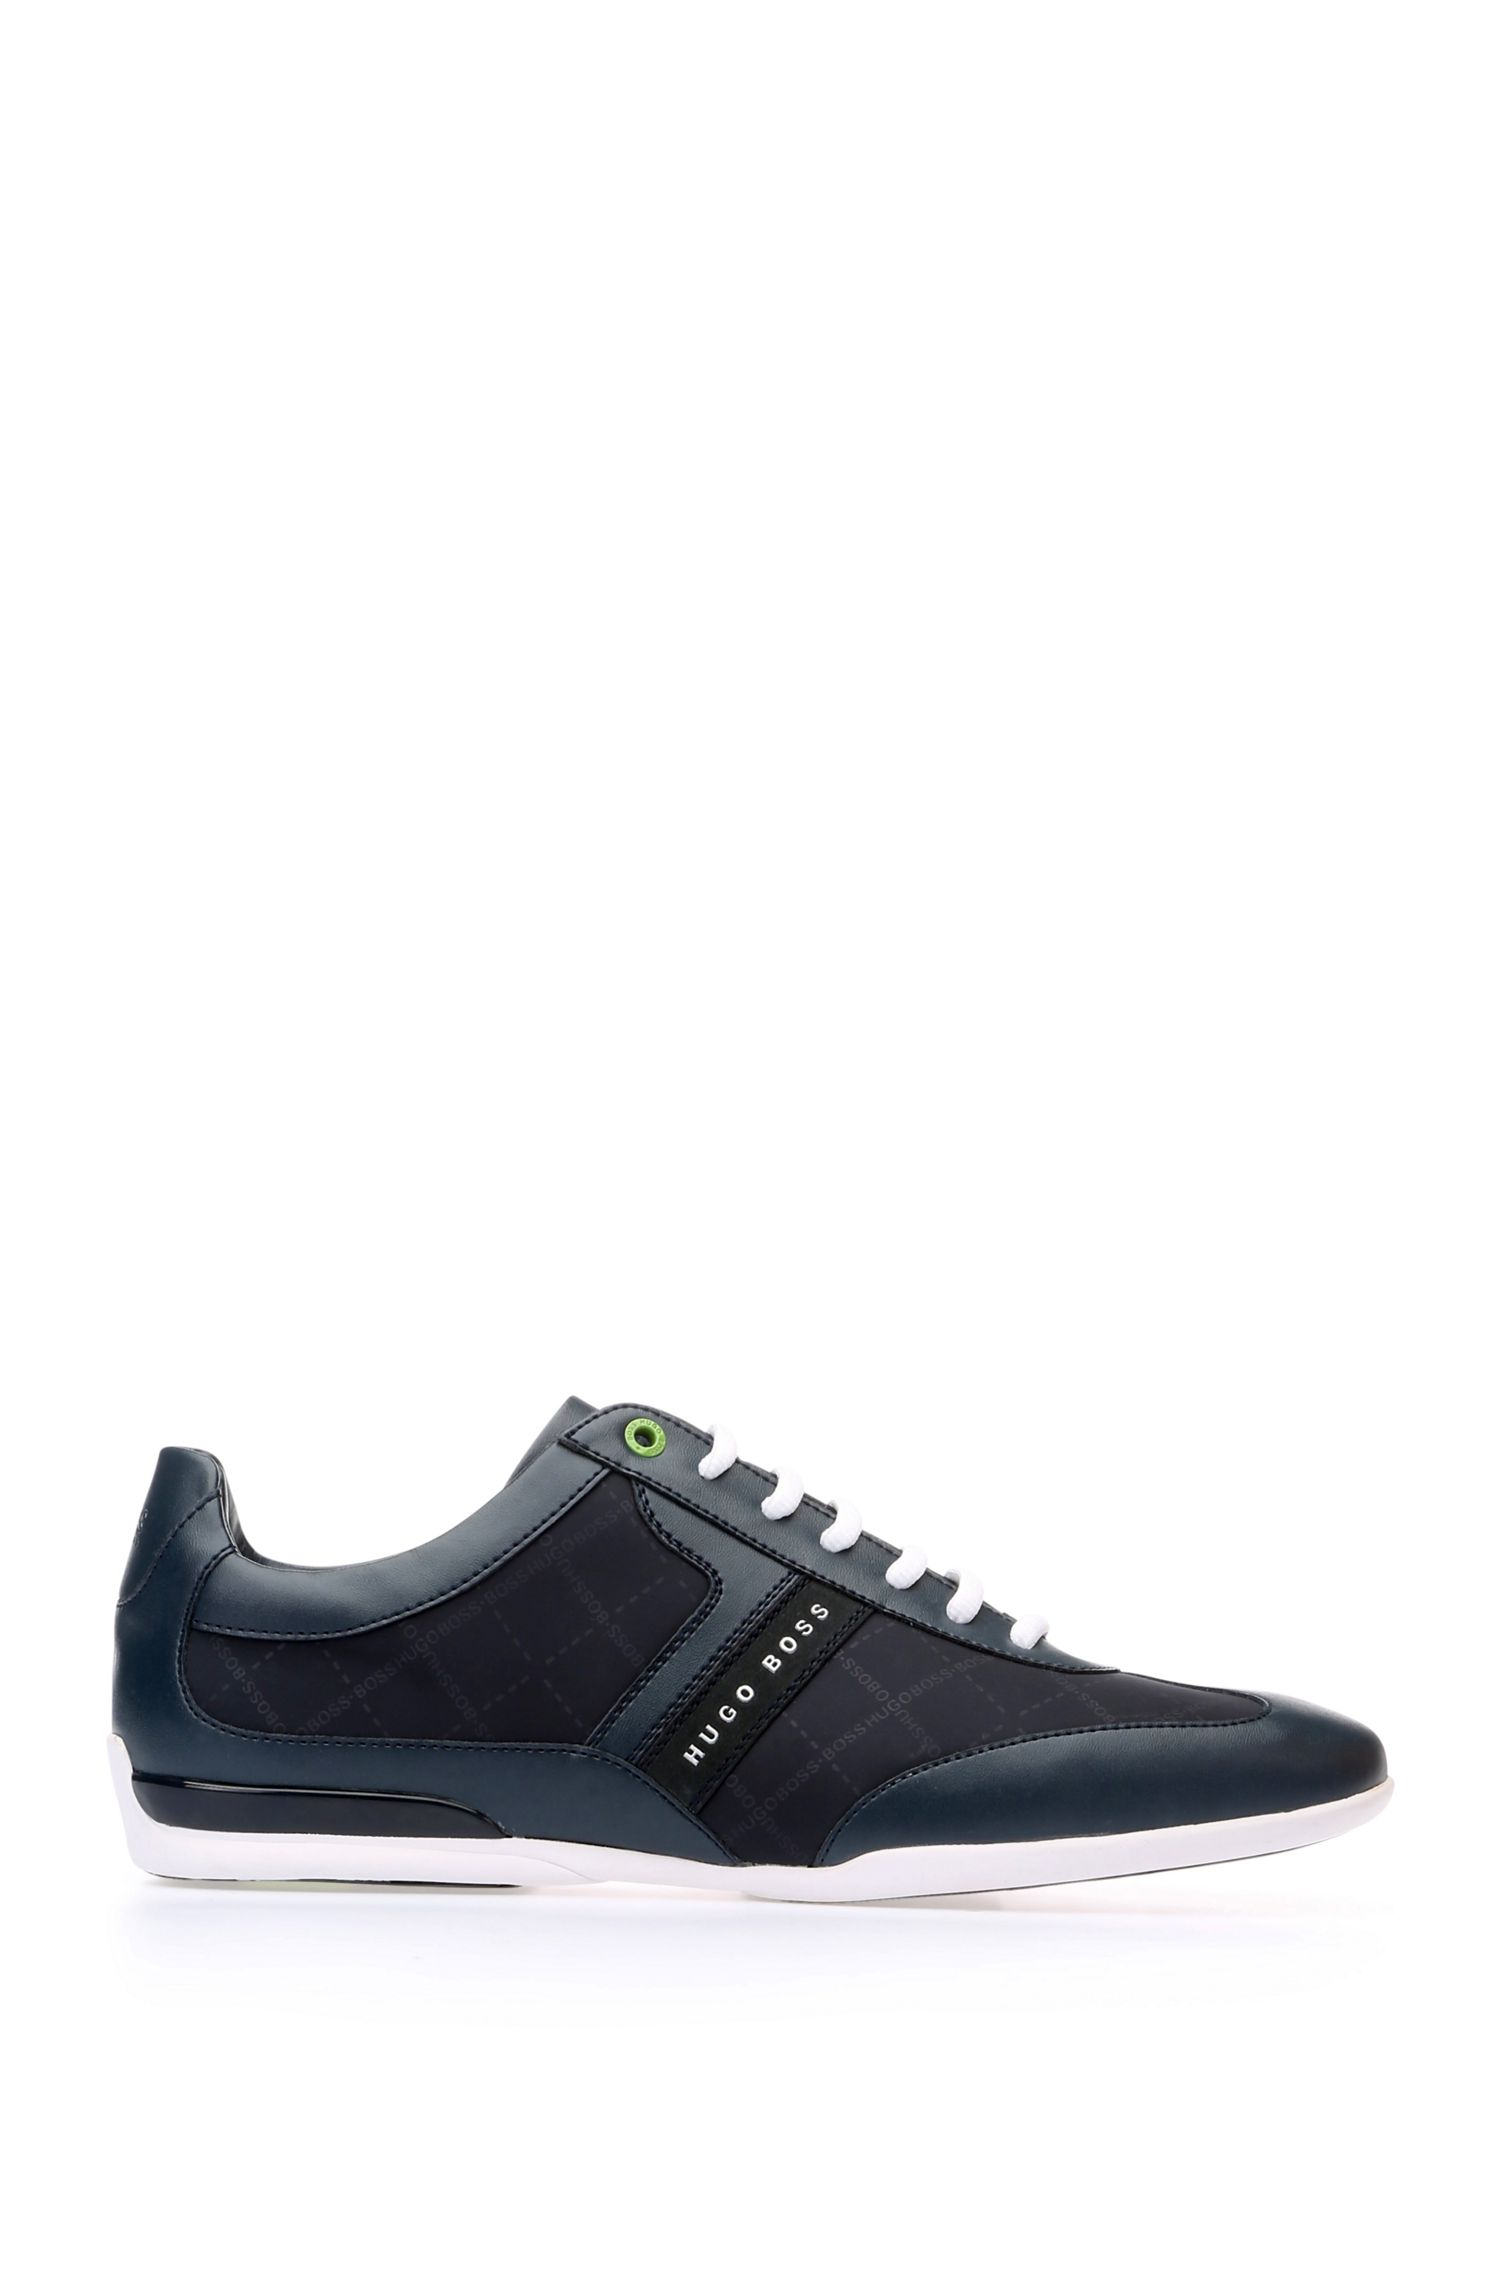 Sneakers low-top stampate con sezioni in pelle